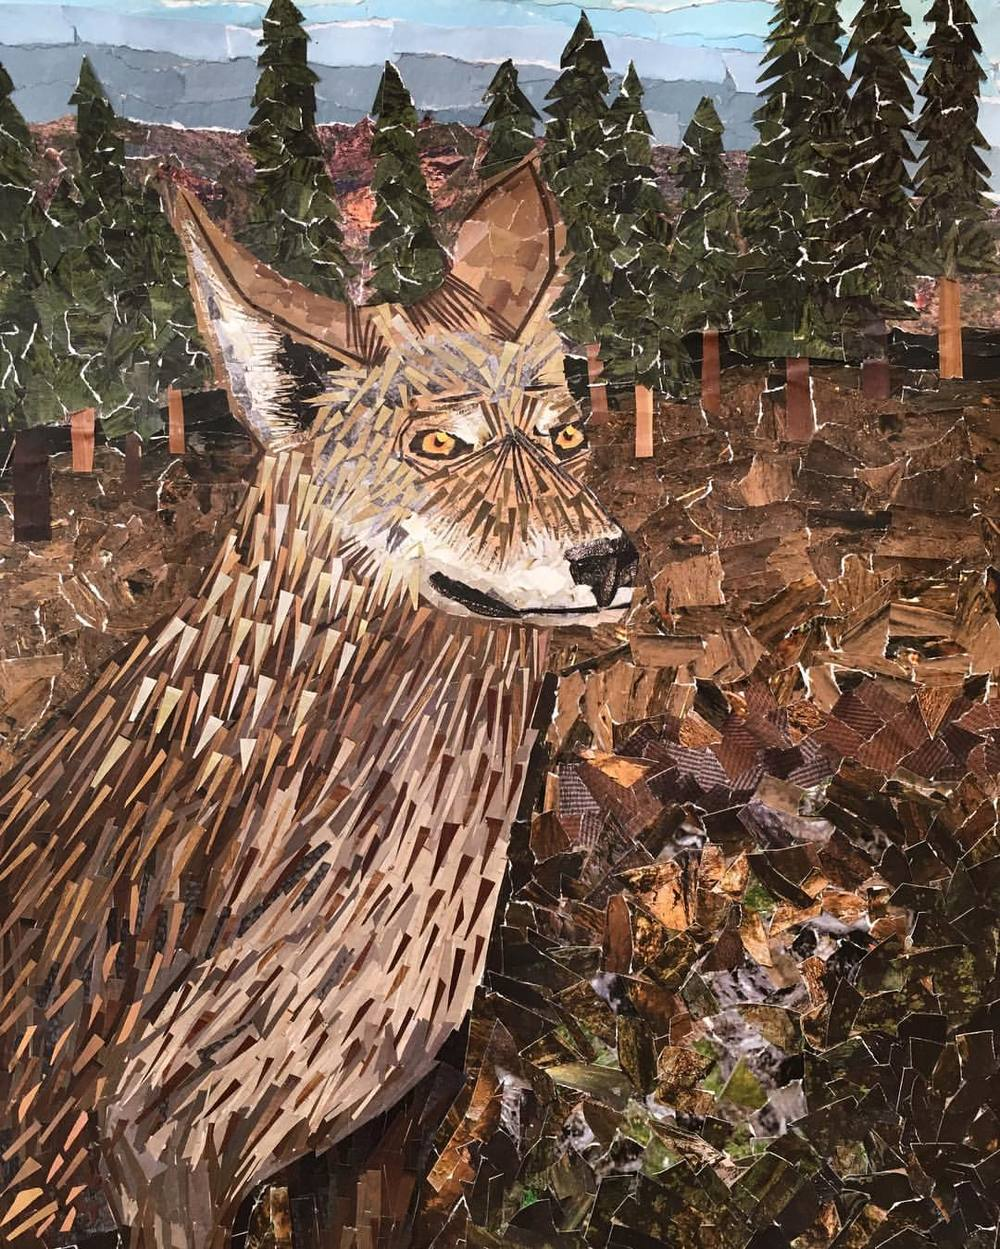 A coyote visits. Erica Cirino, July 2016. (Cut and torn paper collage)